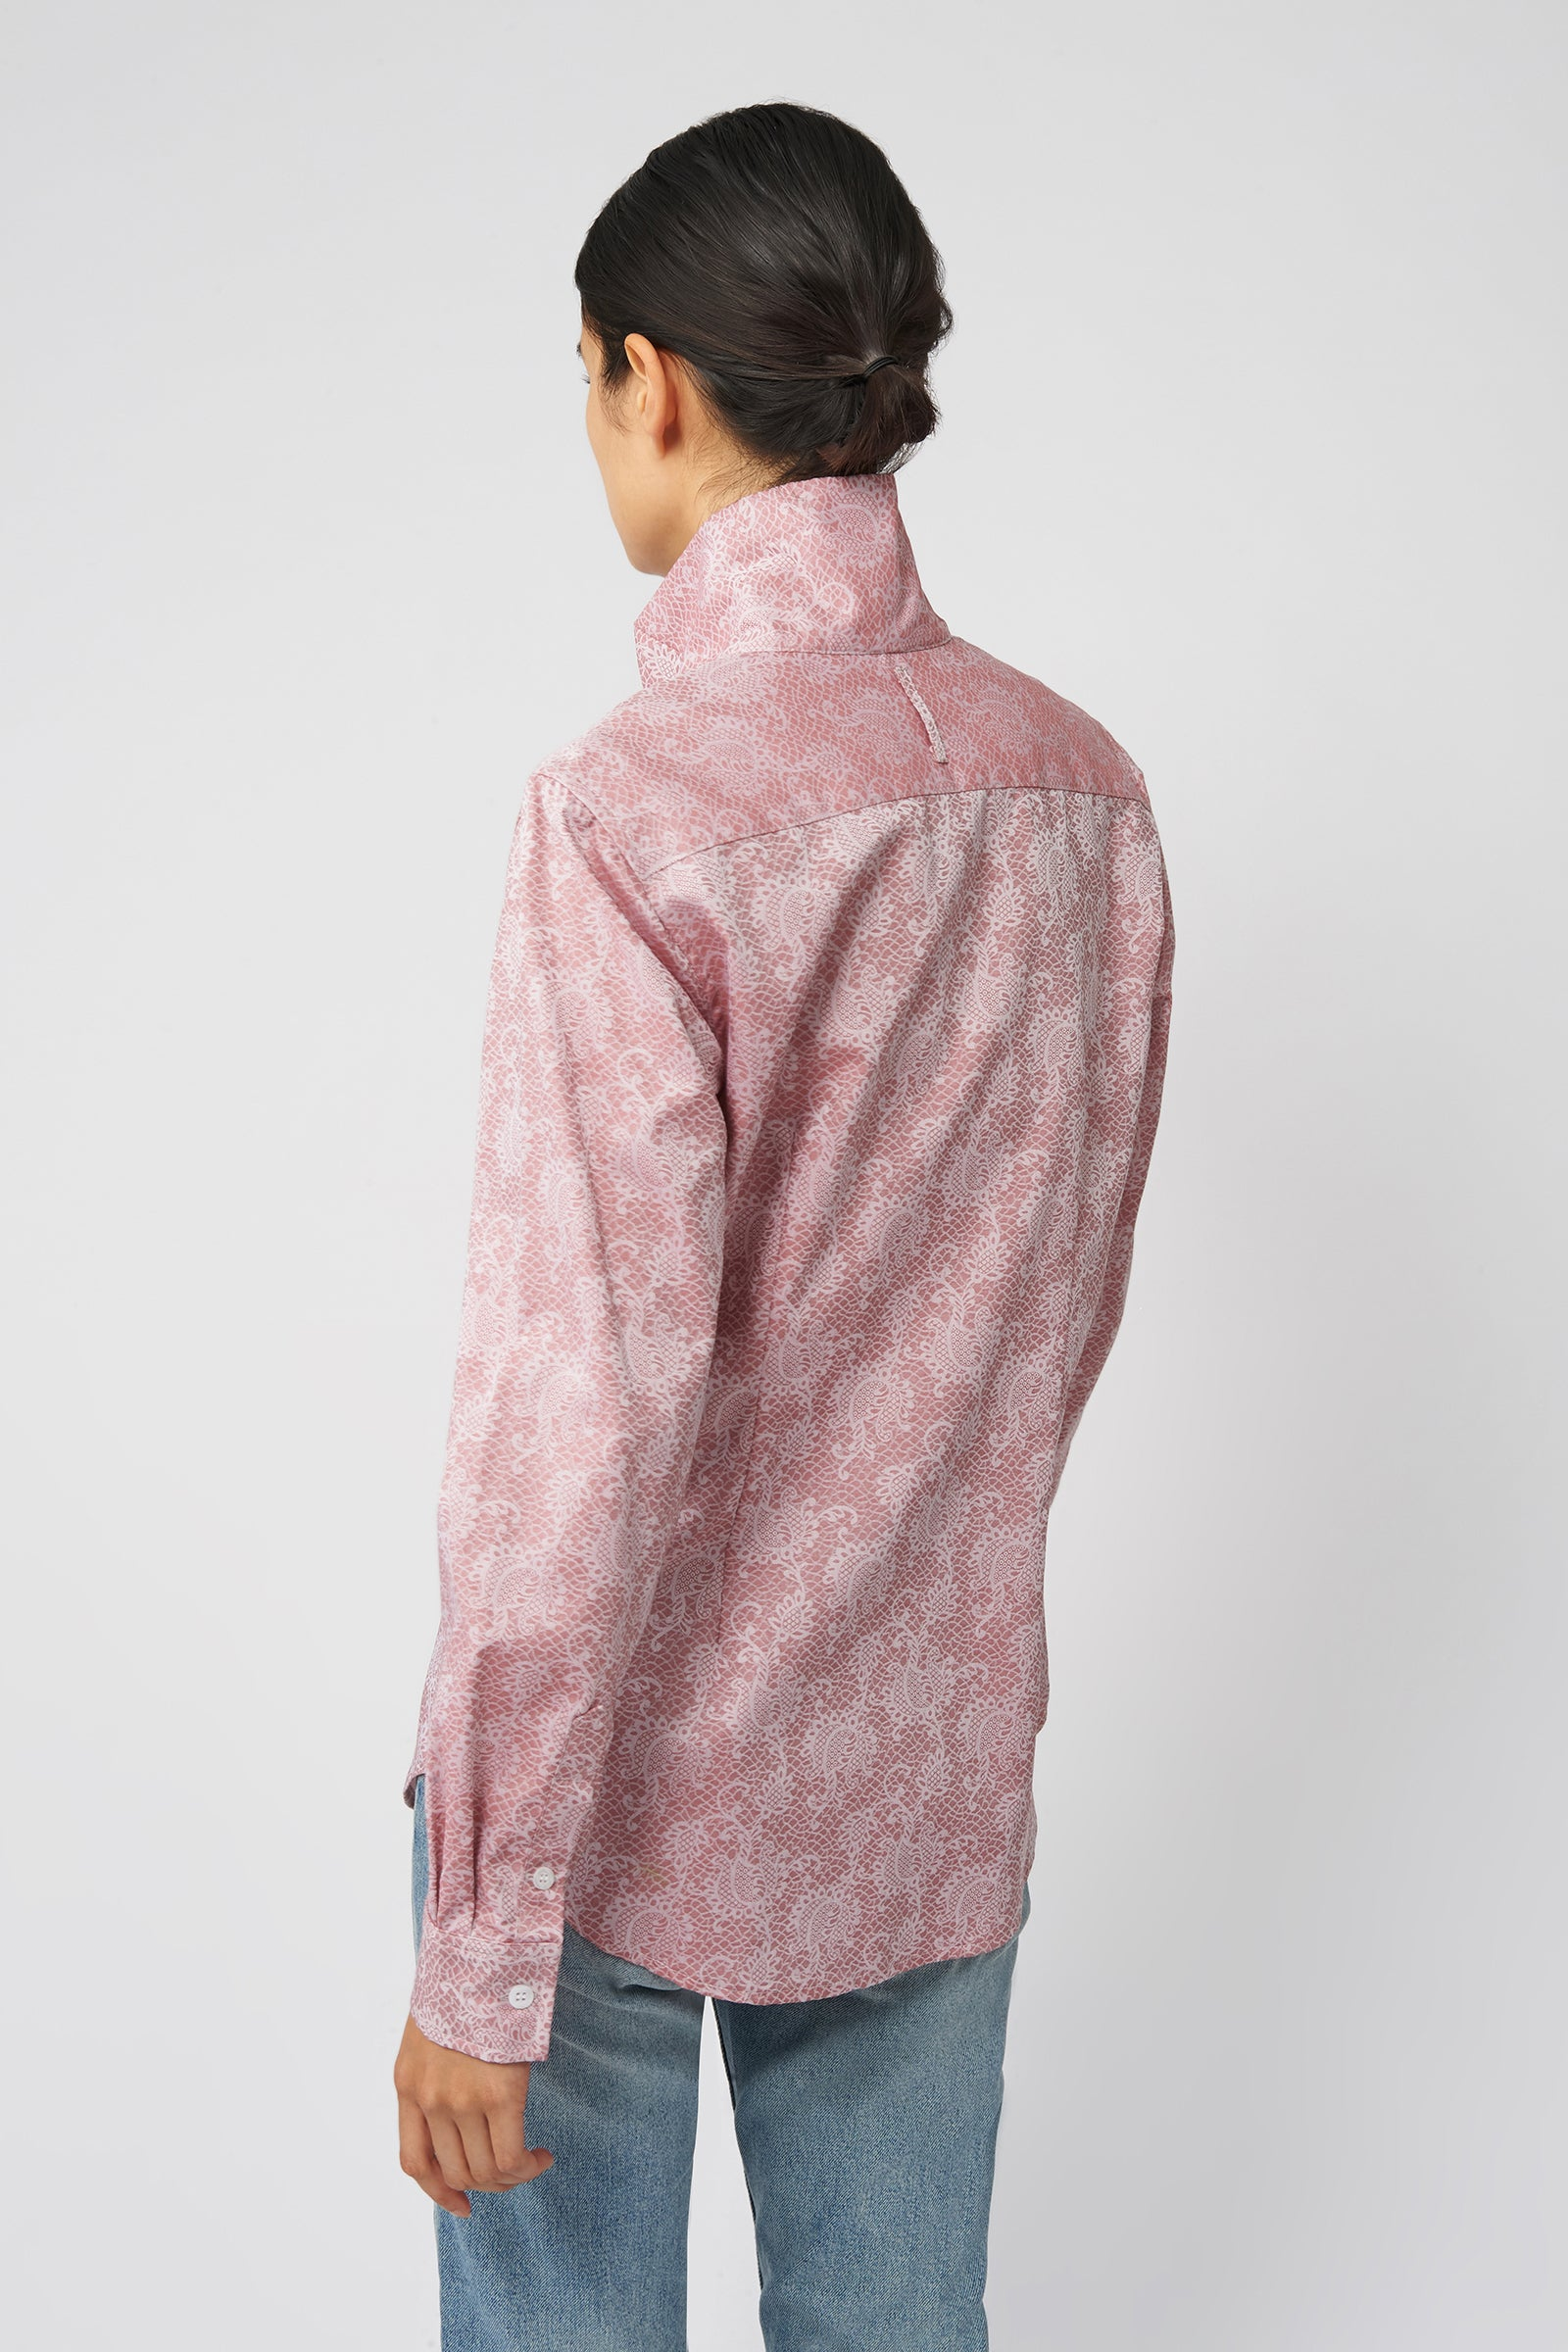 Kal Rieman Ginna Tailored Shirt in Rose Floral Jacquard on Model Back View